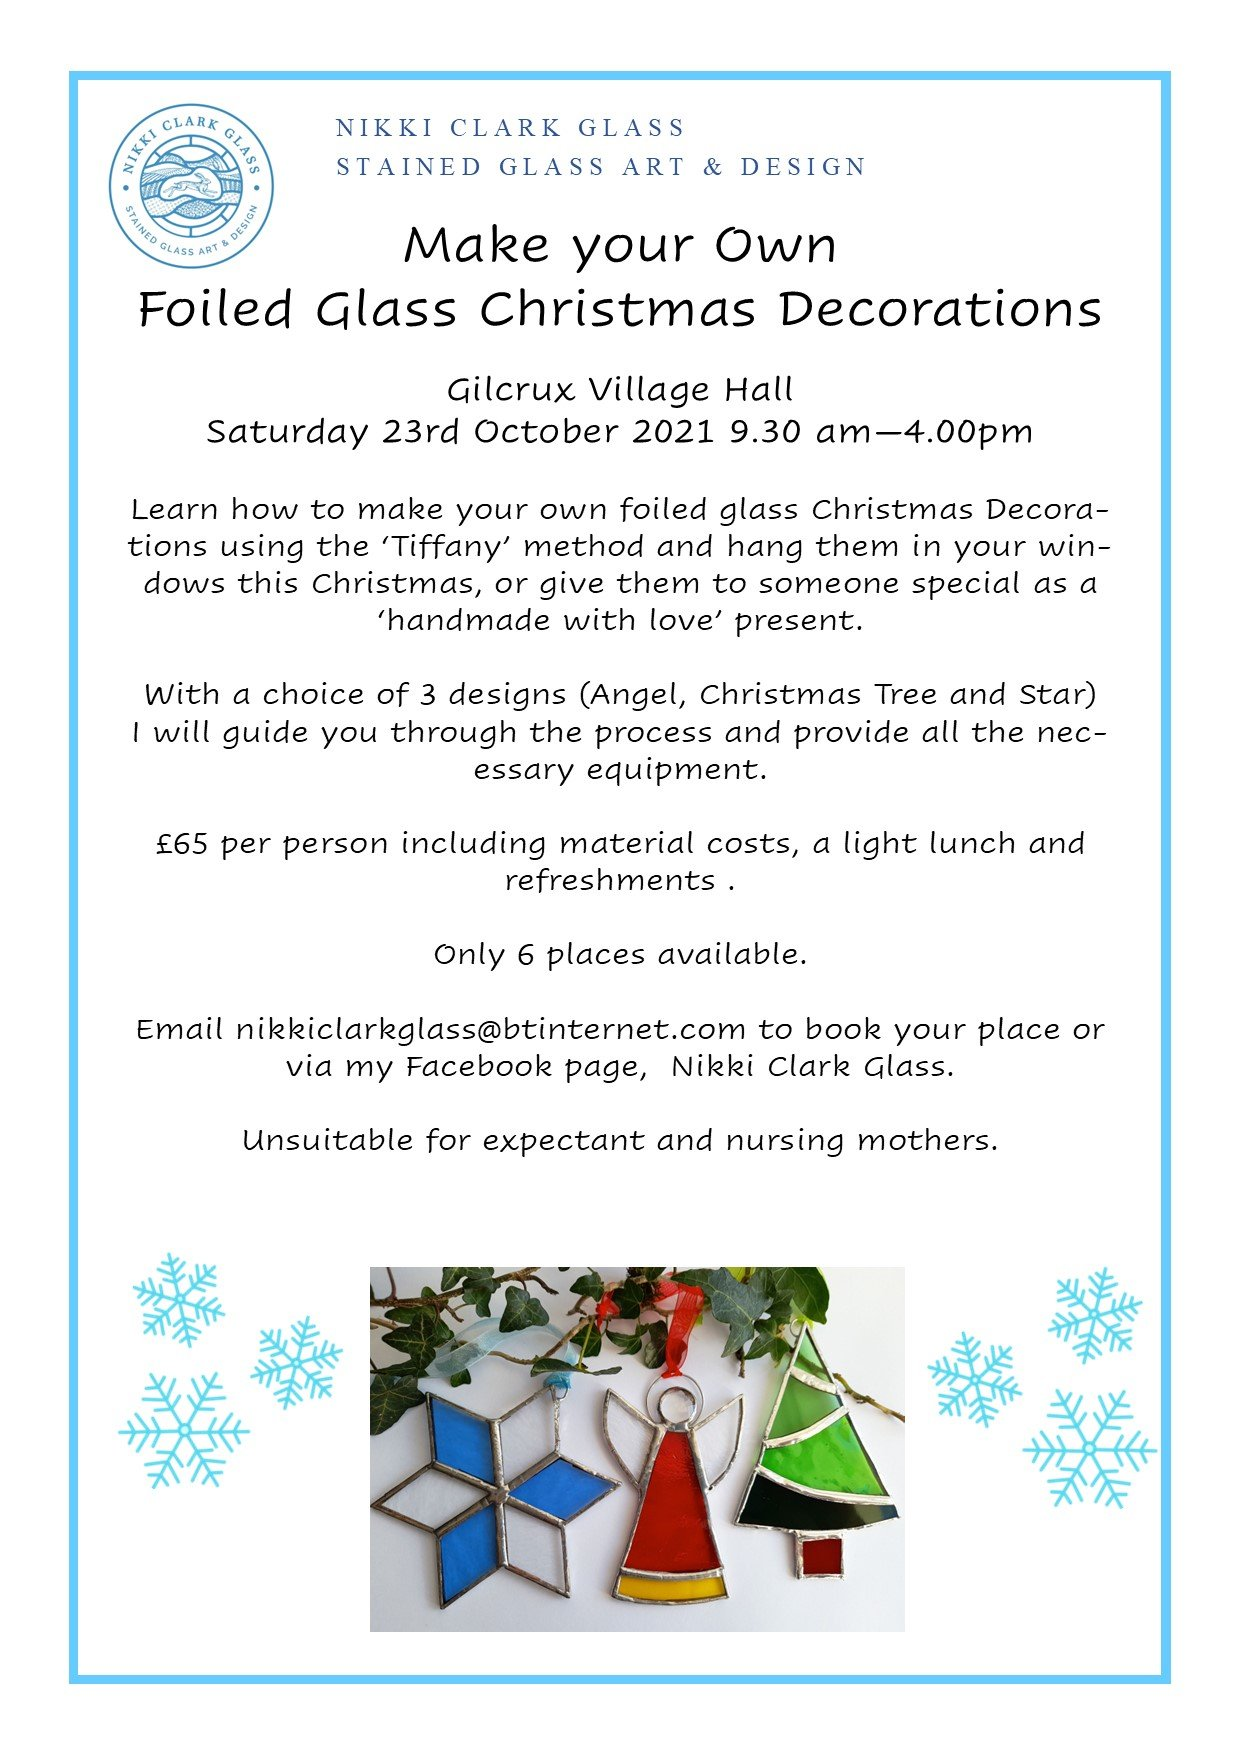 Make Your Own Foiled Glass Christmas Decorations - 23 October 2021